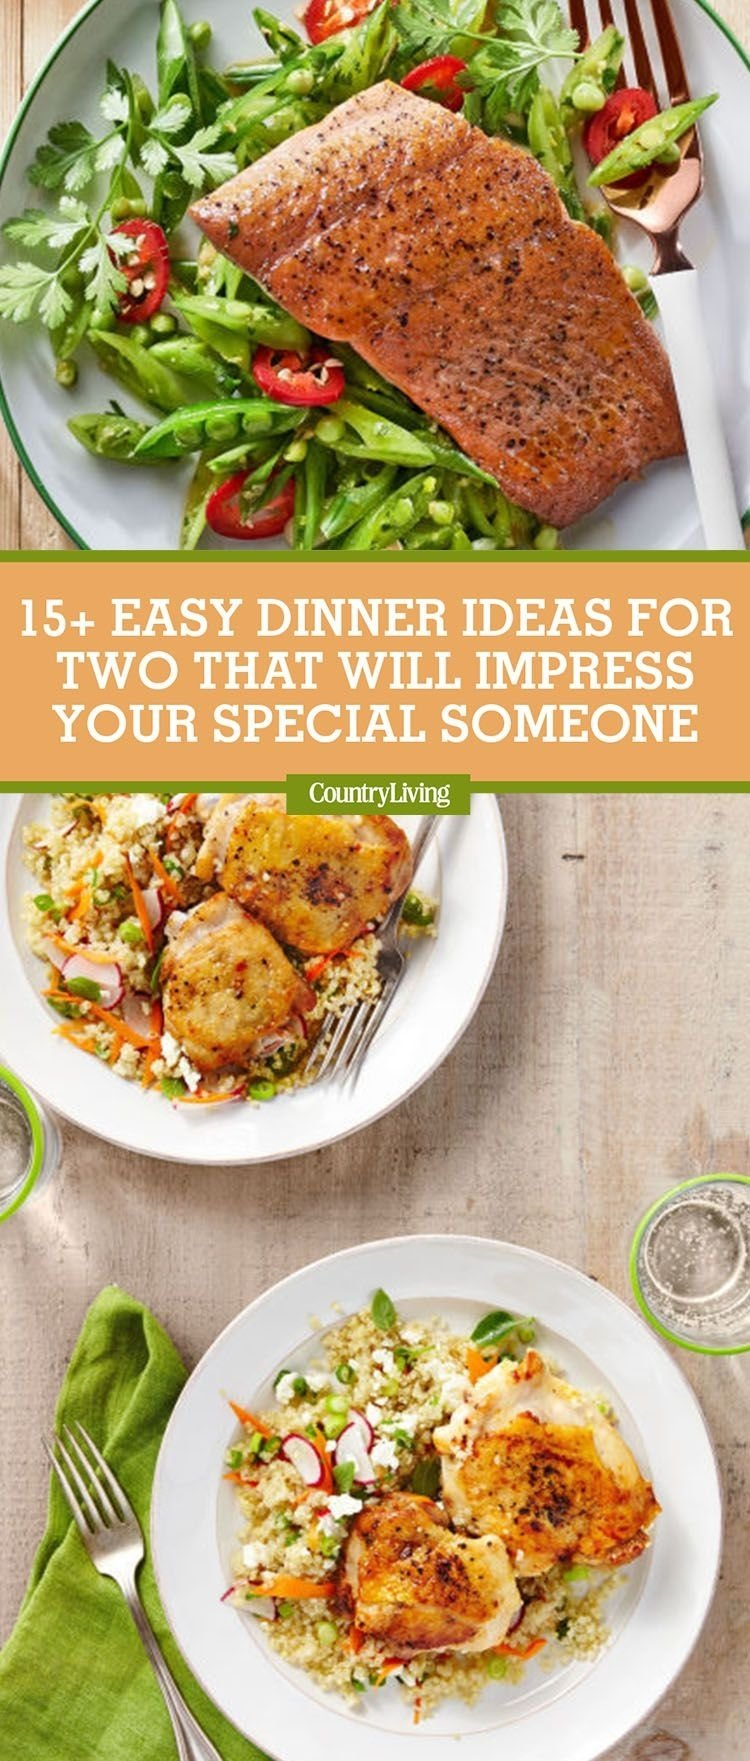 10 Fashionable Cheap Meal Ideas For Two 17 easy dinner ideas for two romantic dinner for two recipes 11 2020